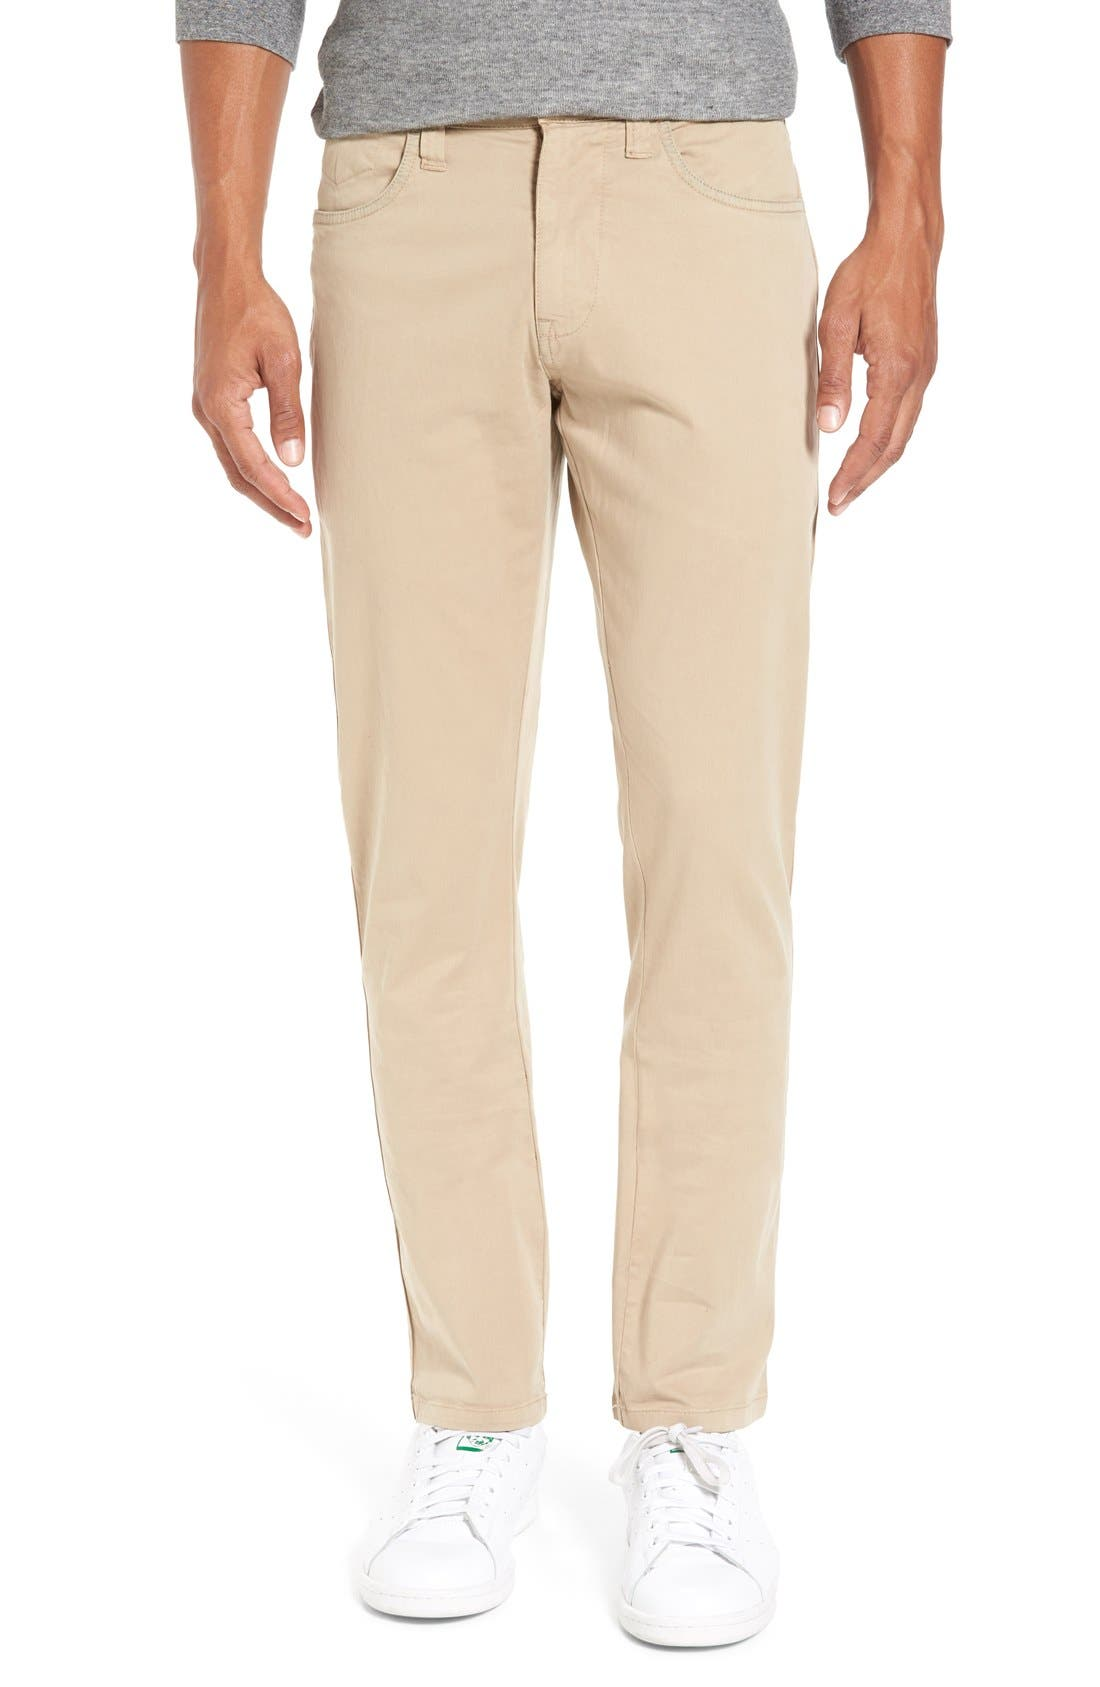 'Sunny' Slim Fit Stretch Twill Pants,                         Main,                         color, Khaki